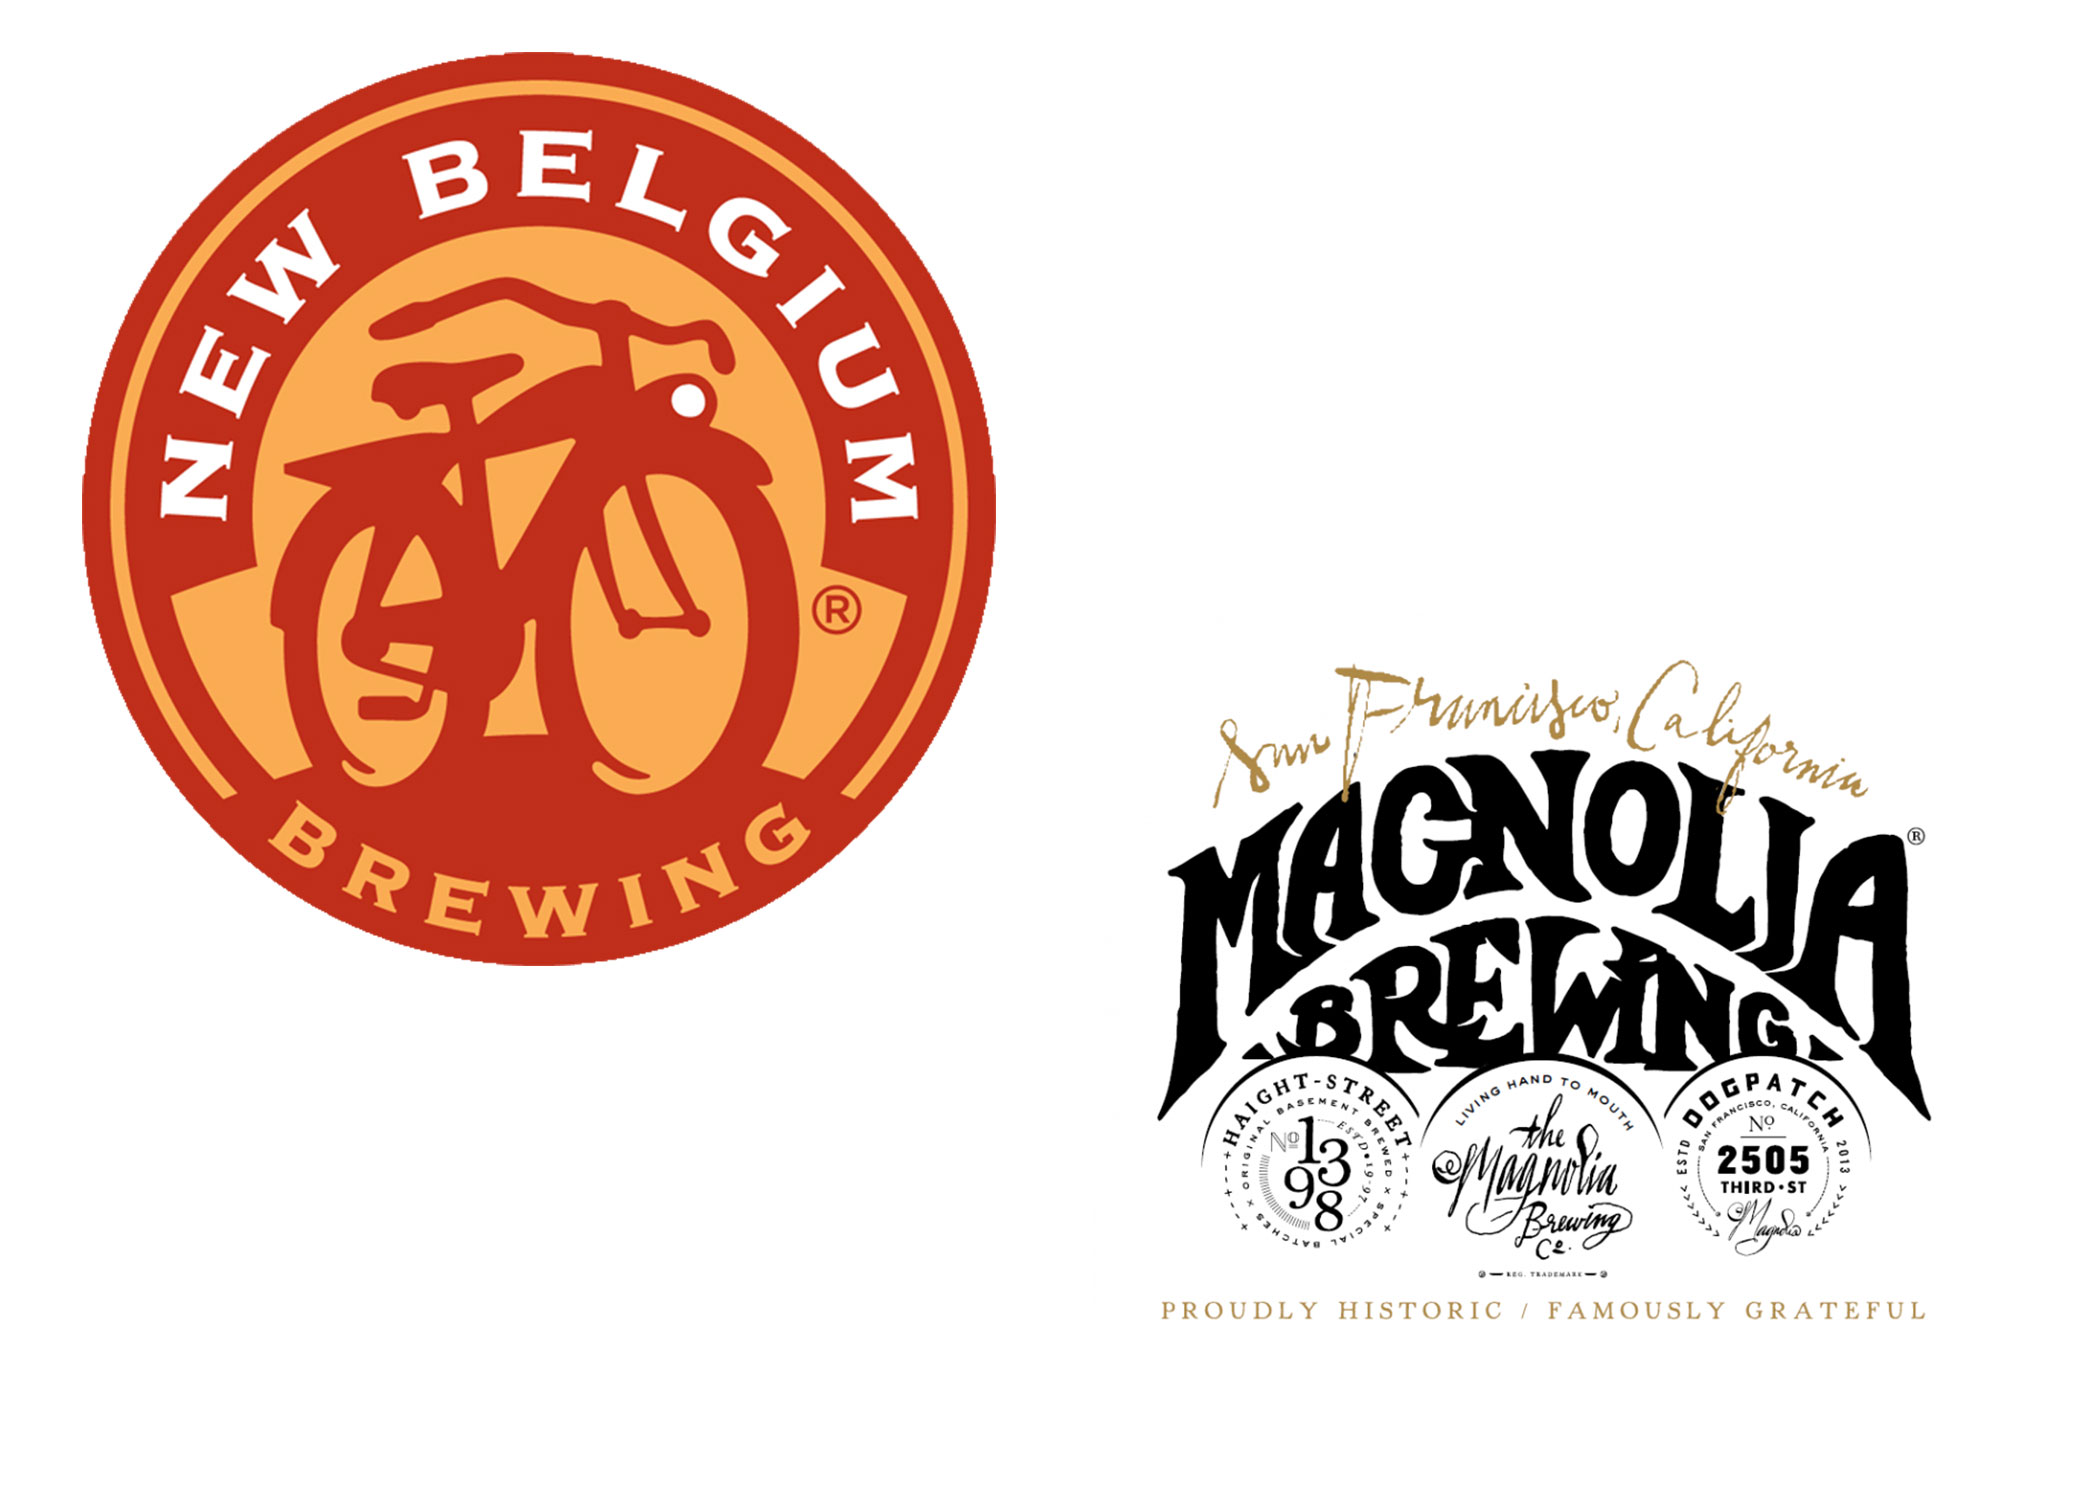 New Belgium acquires Magnolia Brewing, with famed lambic producer